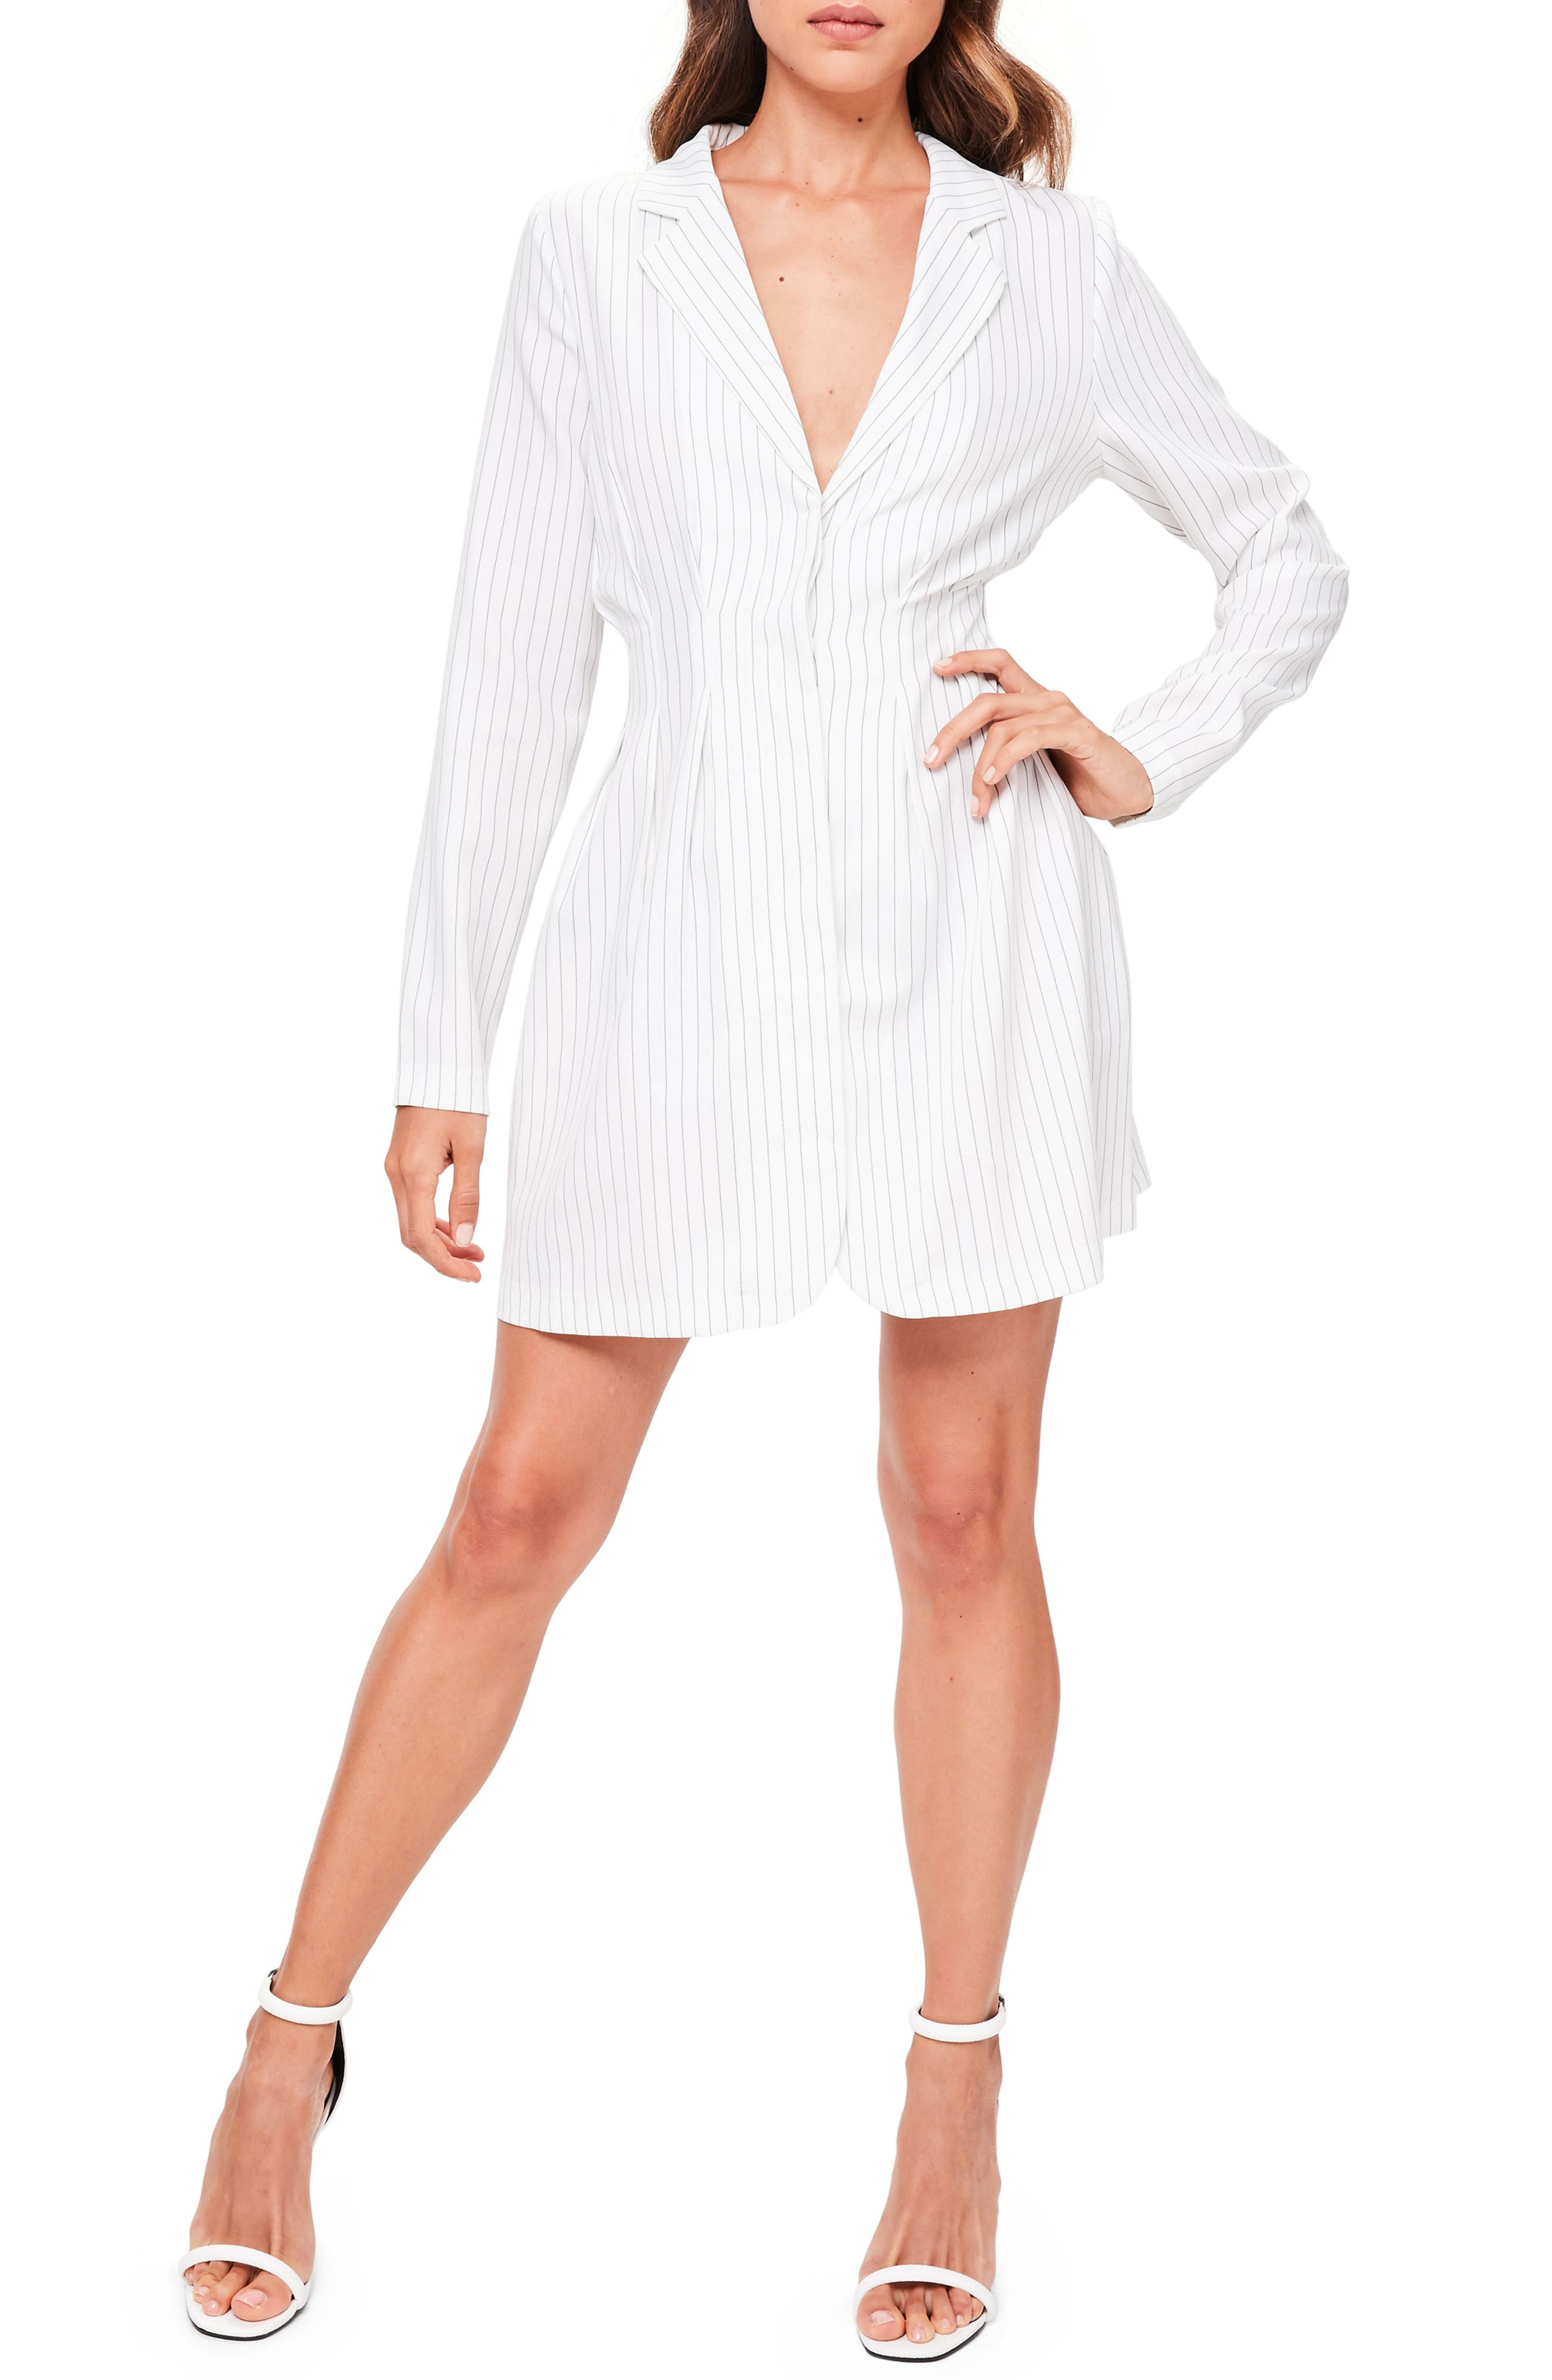 Pinstripe Blazer Dress,                             Main thumbnail 1, color,                             White